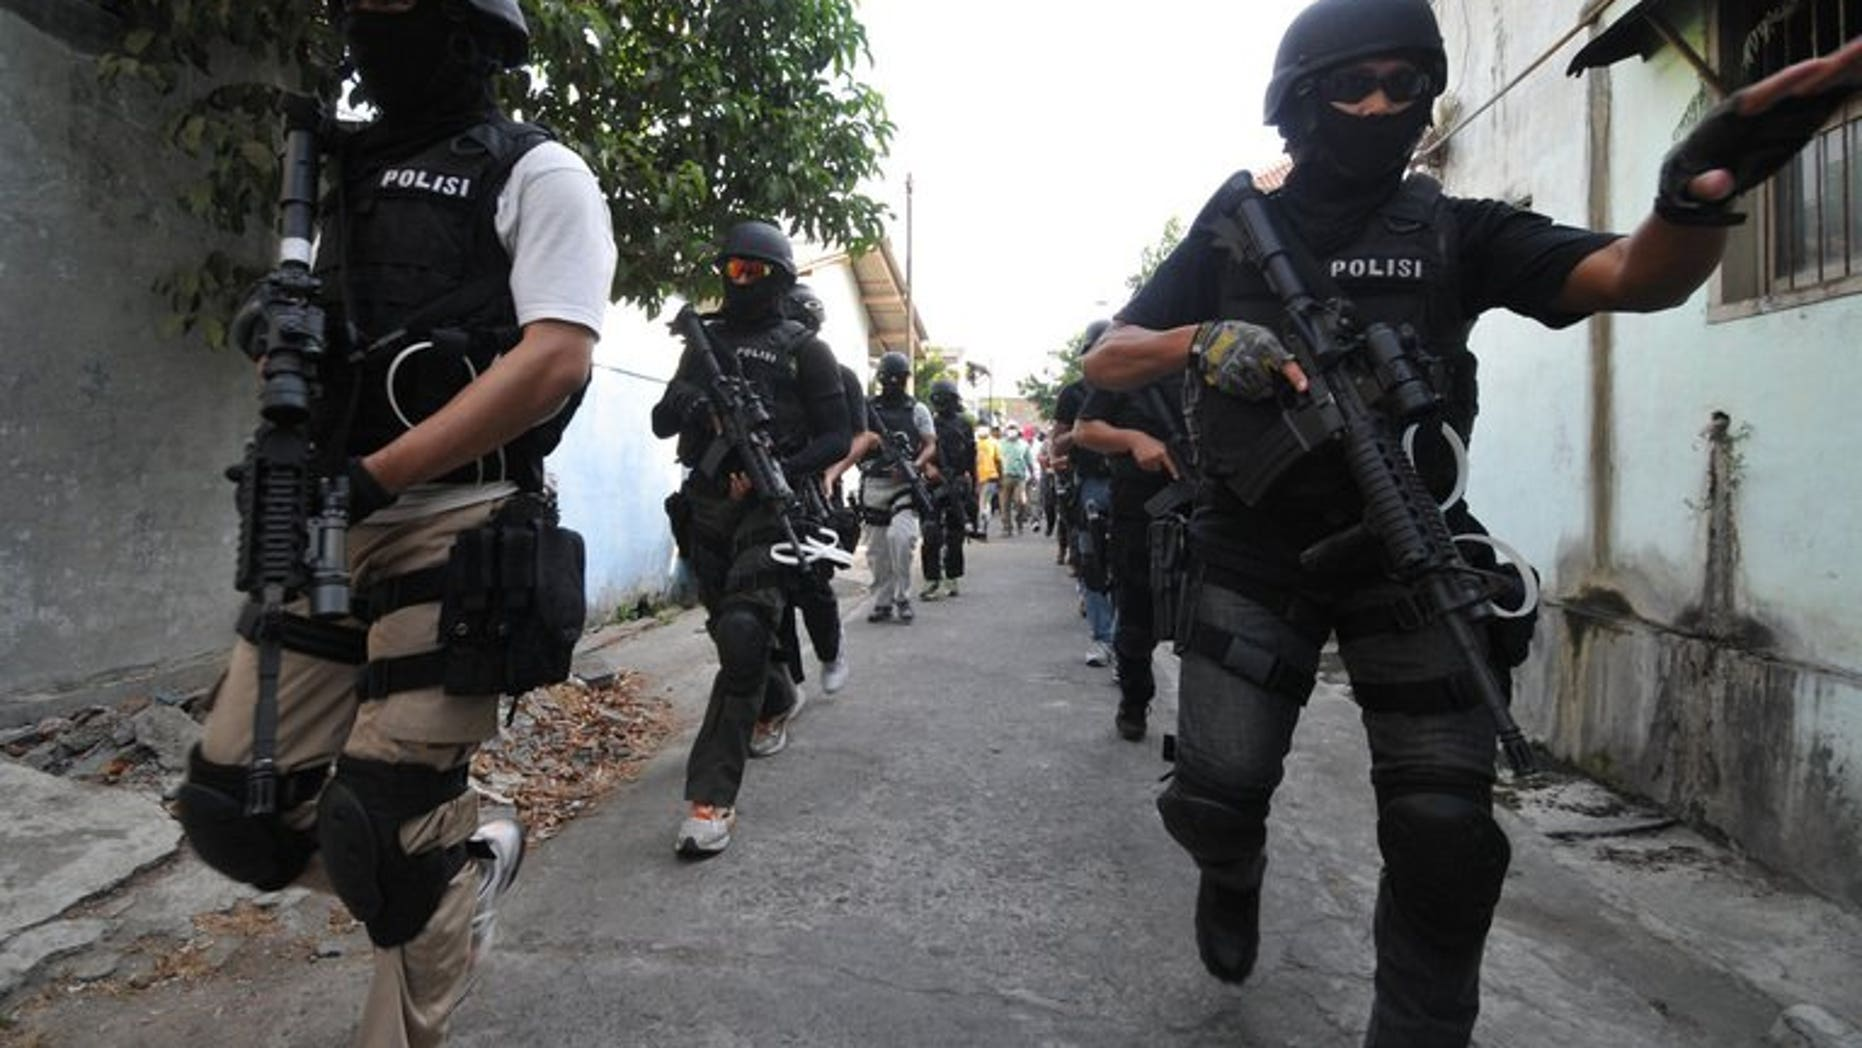 """Indonesian anti-terror police from 'Detachment 88' raid a house in Solo, on September 26, 2012. Indonesia's most wanted Islamic militant has appeared in a video posted on the Internet delivering a tirade against 'Detachment 88' and urging """"jihad""""."""